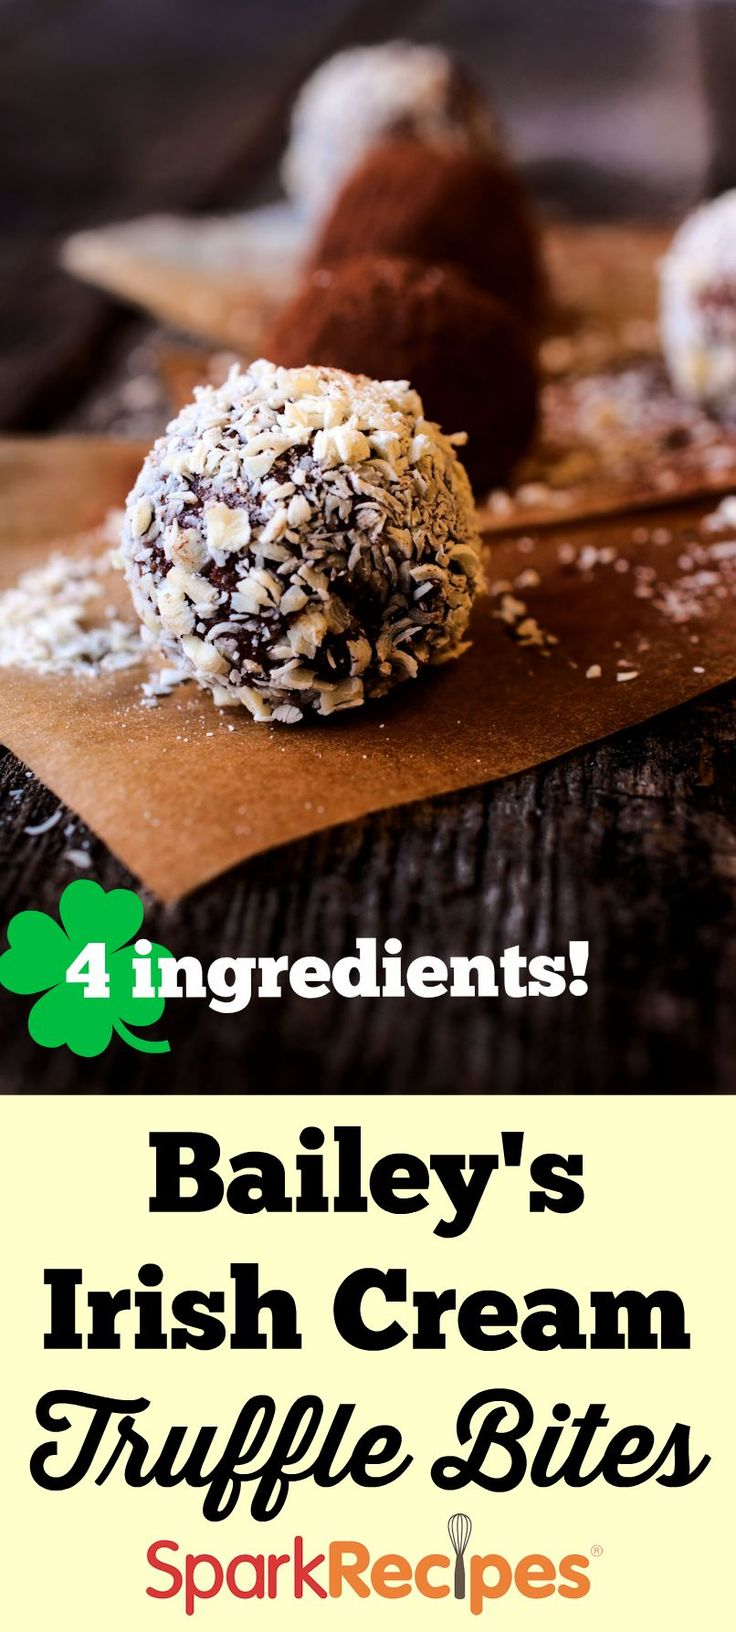 Using just four ingredients, these chocolate Bailey's truffles are simple to make and fun to eat. These can easily be made ahead to save on time. Roll them in cocoa or chocolate sprinkles instead of sugar, if desired.